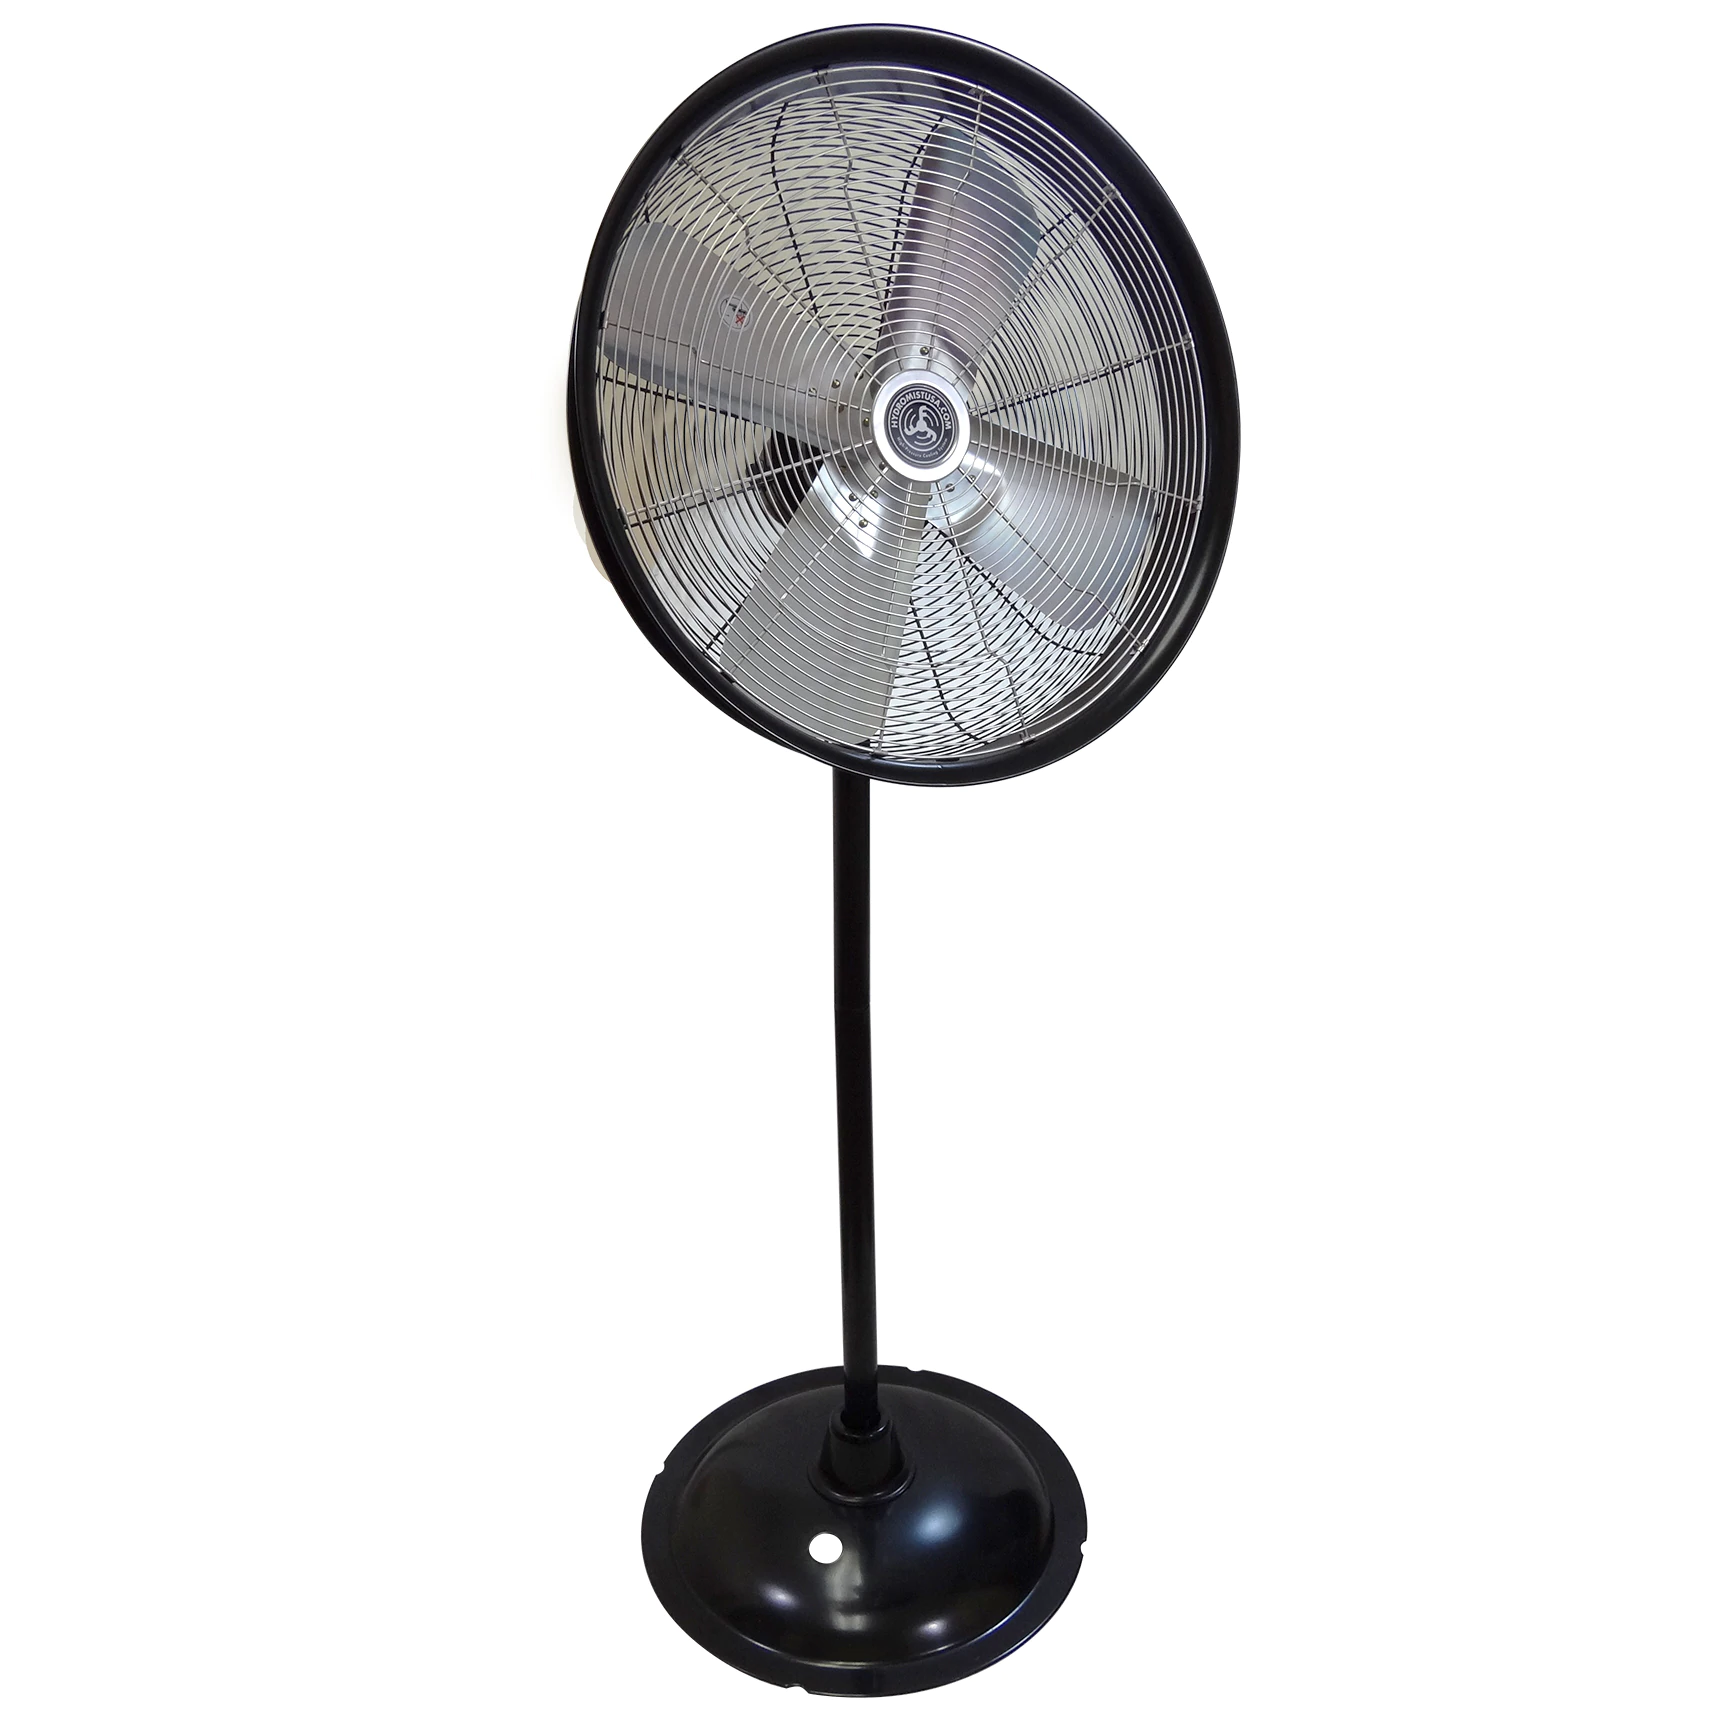 24 Inch Shrouded Ocscillating Outdoor Indoor Fan-3 Speeds on a stand black